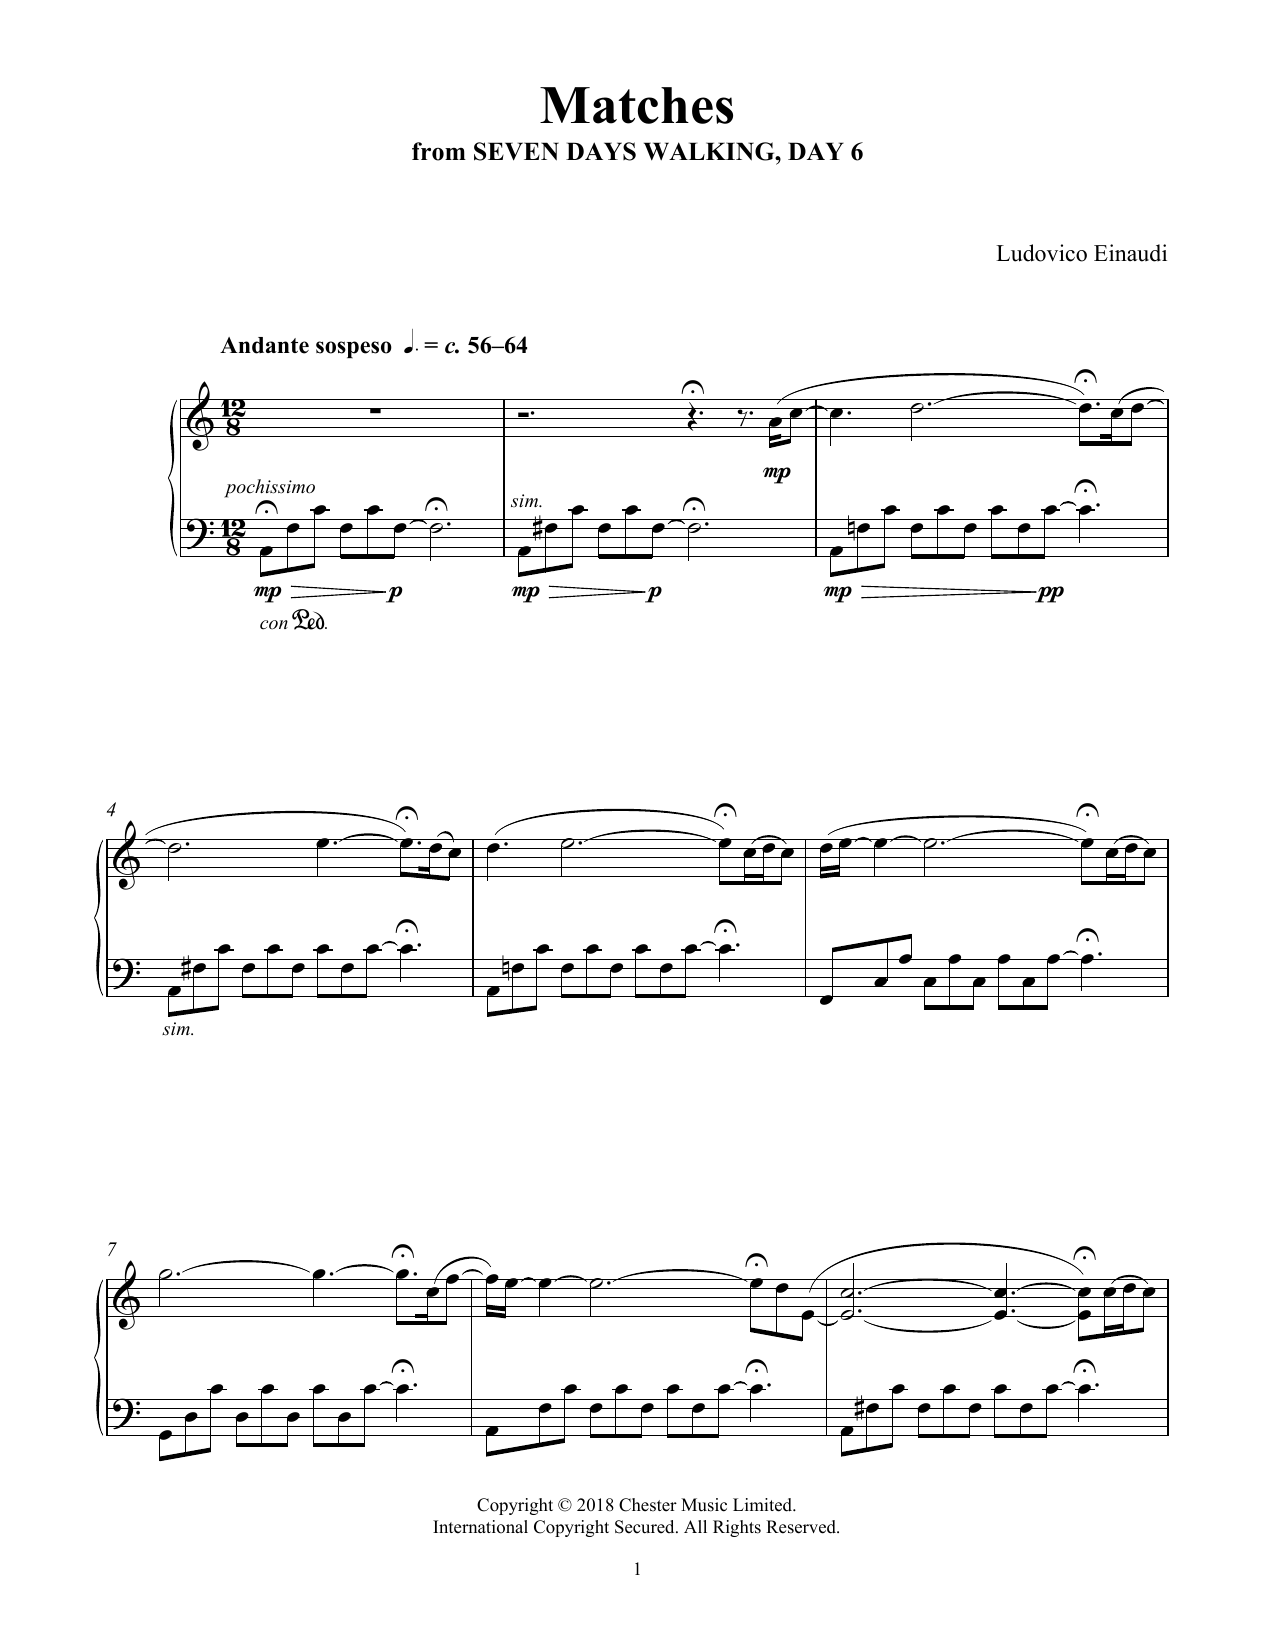 Ludovico Einaudi Matches (from Seven Days Walking: Day 6) sheet music notes and chords. Download Printable PDF.